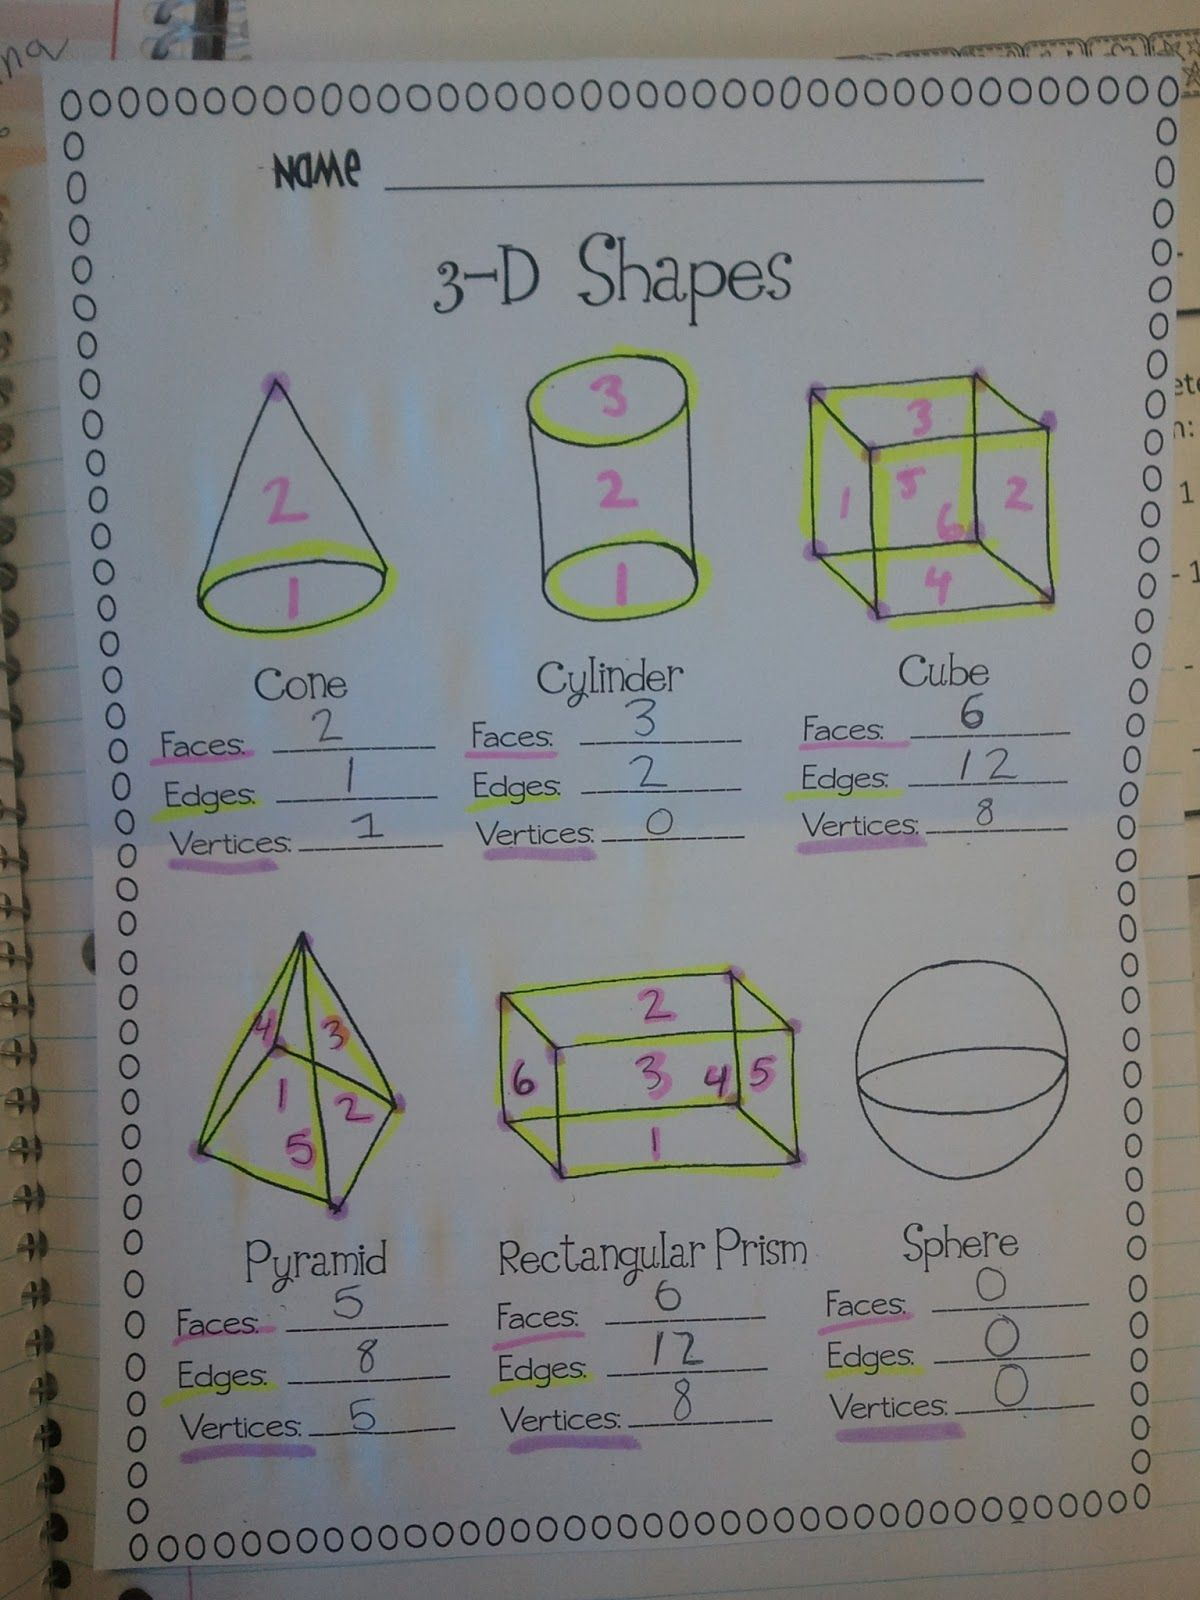 3d Shapes Vertices Faces Amp Edges Simon Says Geometry